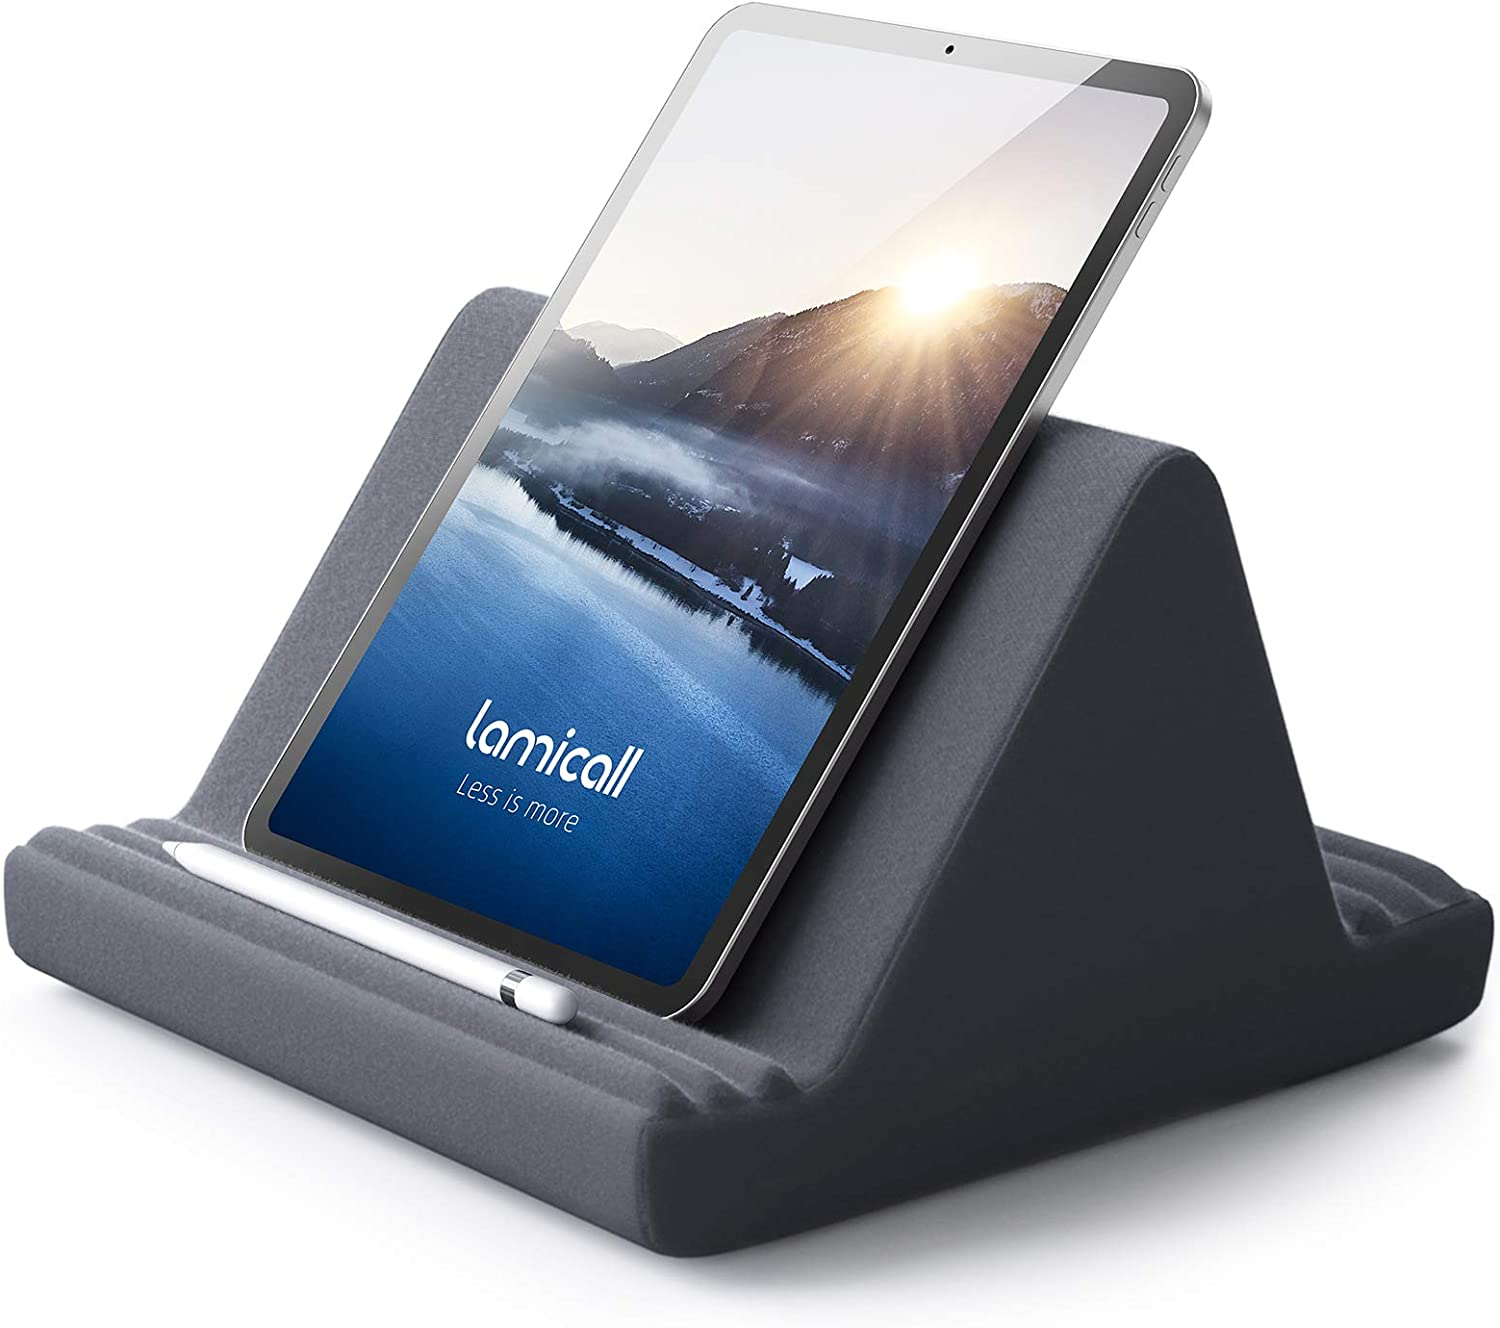 Tablet Pillow Stand, Pillow Soft Pad for Lap - Lamicall Tablet Holder Dock for Bed with 6 Viewing Angles, Compatible with iPad Pro 9.7, 10.5,12.9 Air Mini 4 3, Kindle, Galaxy Tab, E-Reader - Dark Gray